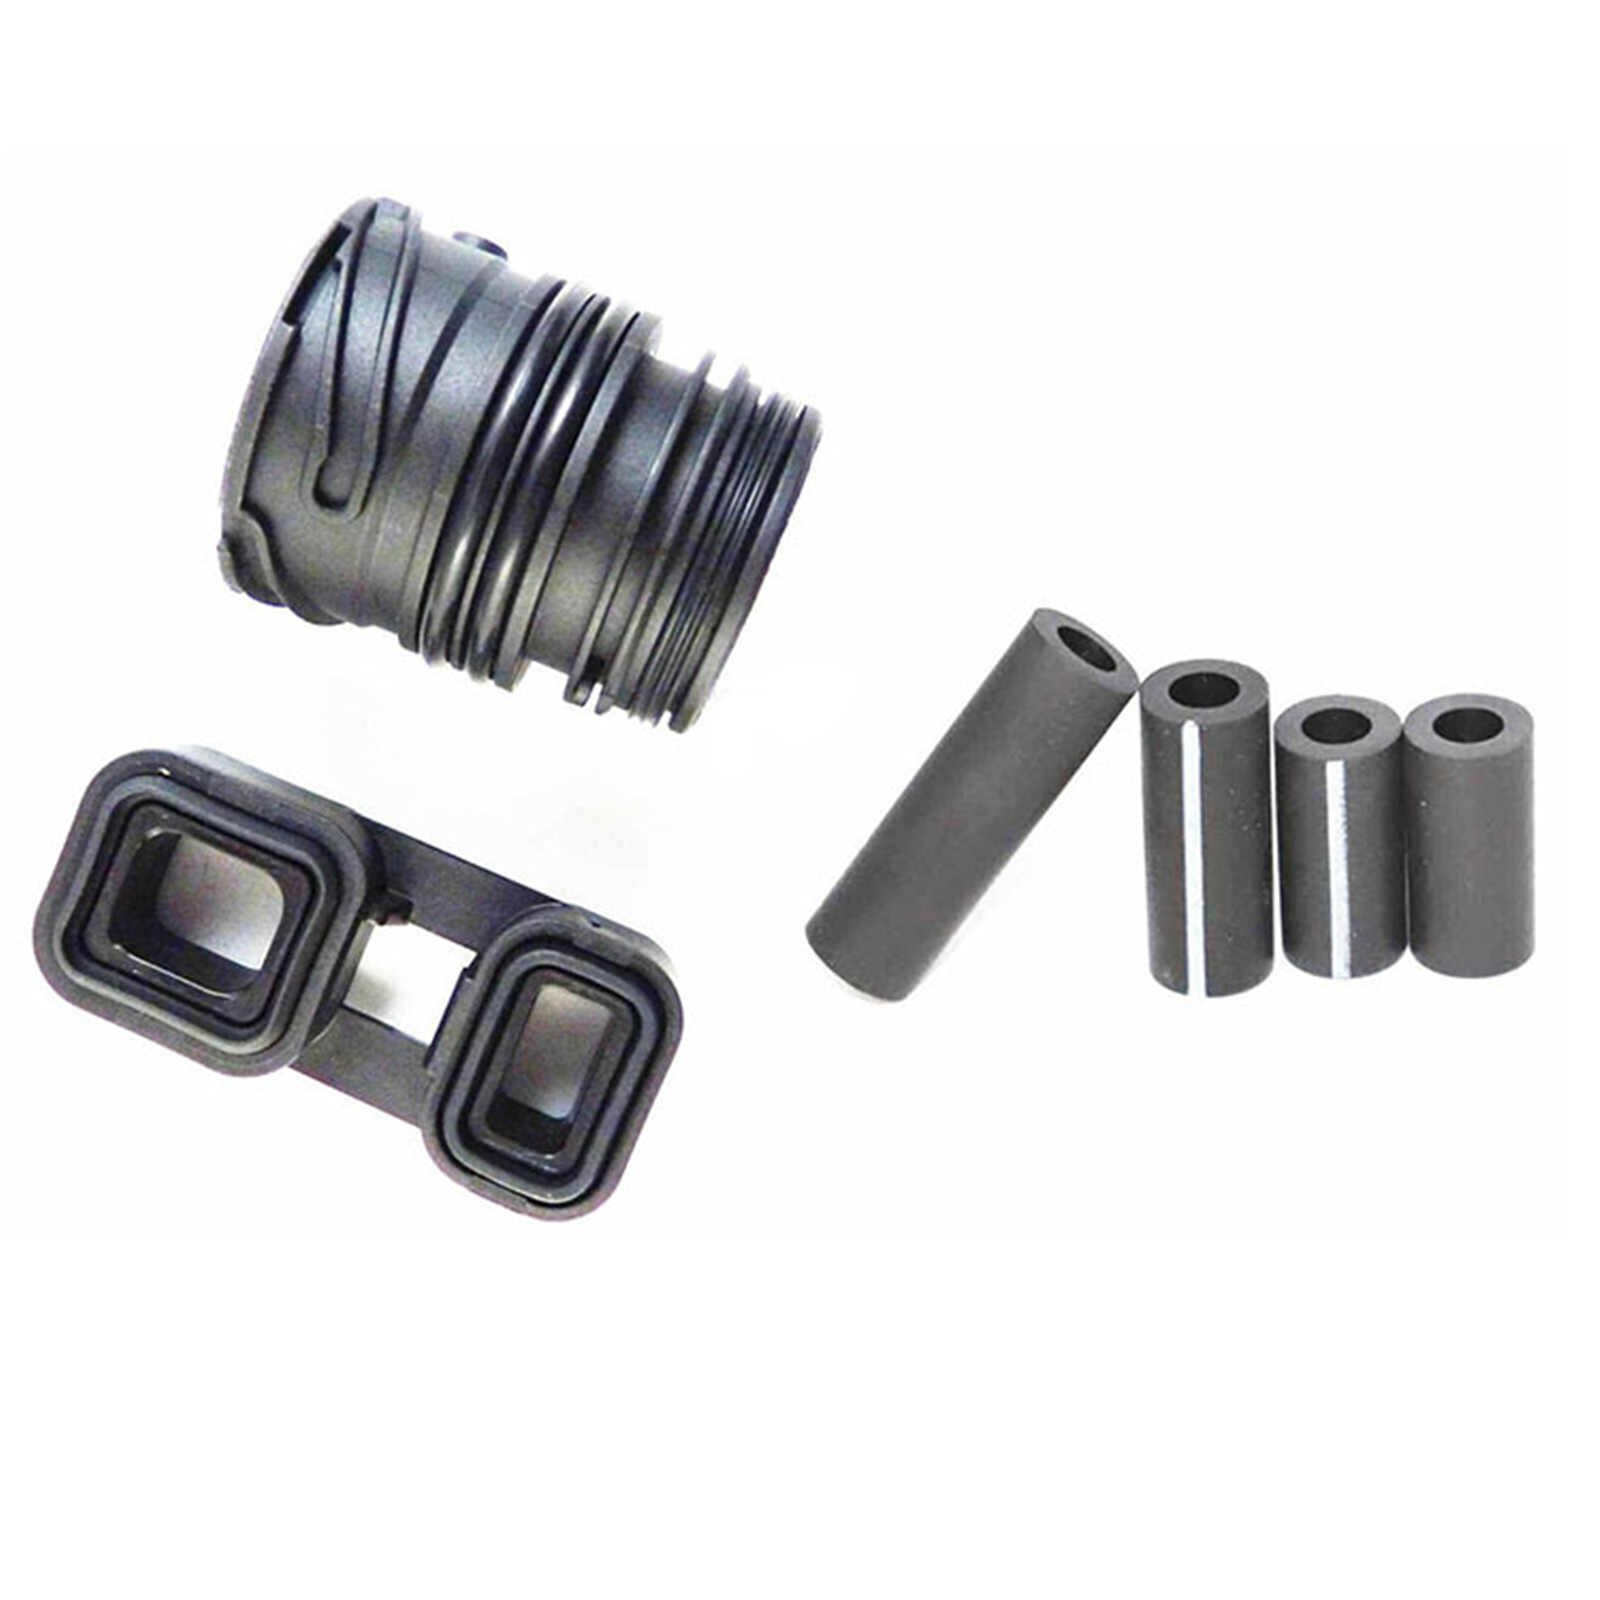 For 6HP26 6HP28 6HP32 6HP34 Valve Body To Case Sleeve Connector Seal Kit For BMW 24347588725/ 24347588727/ 24107519314